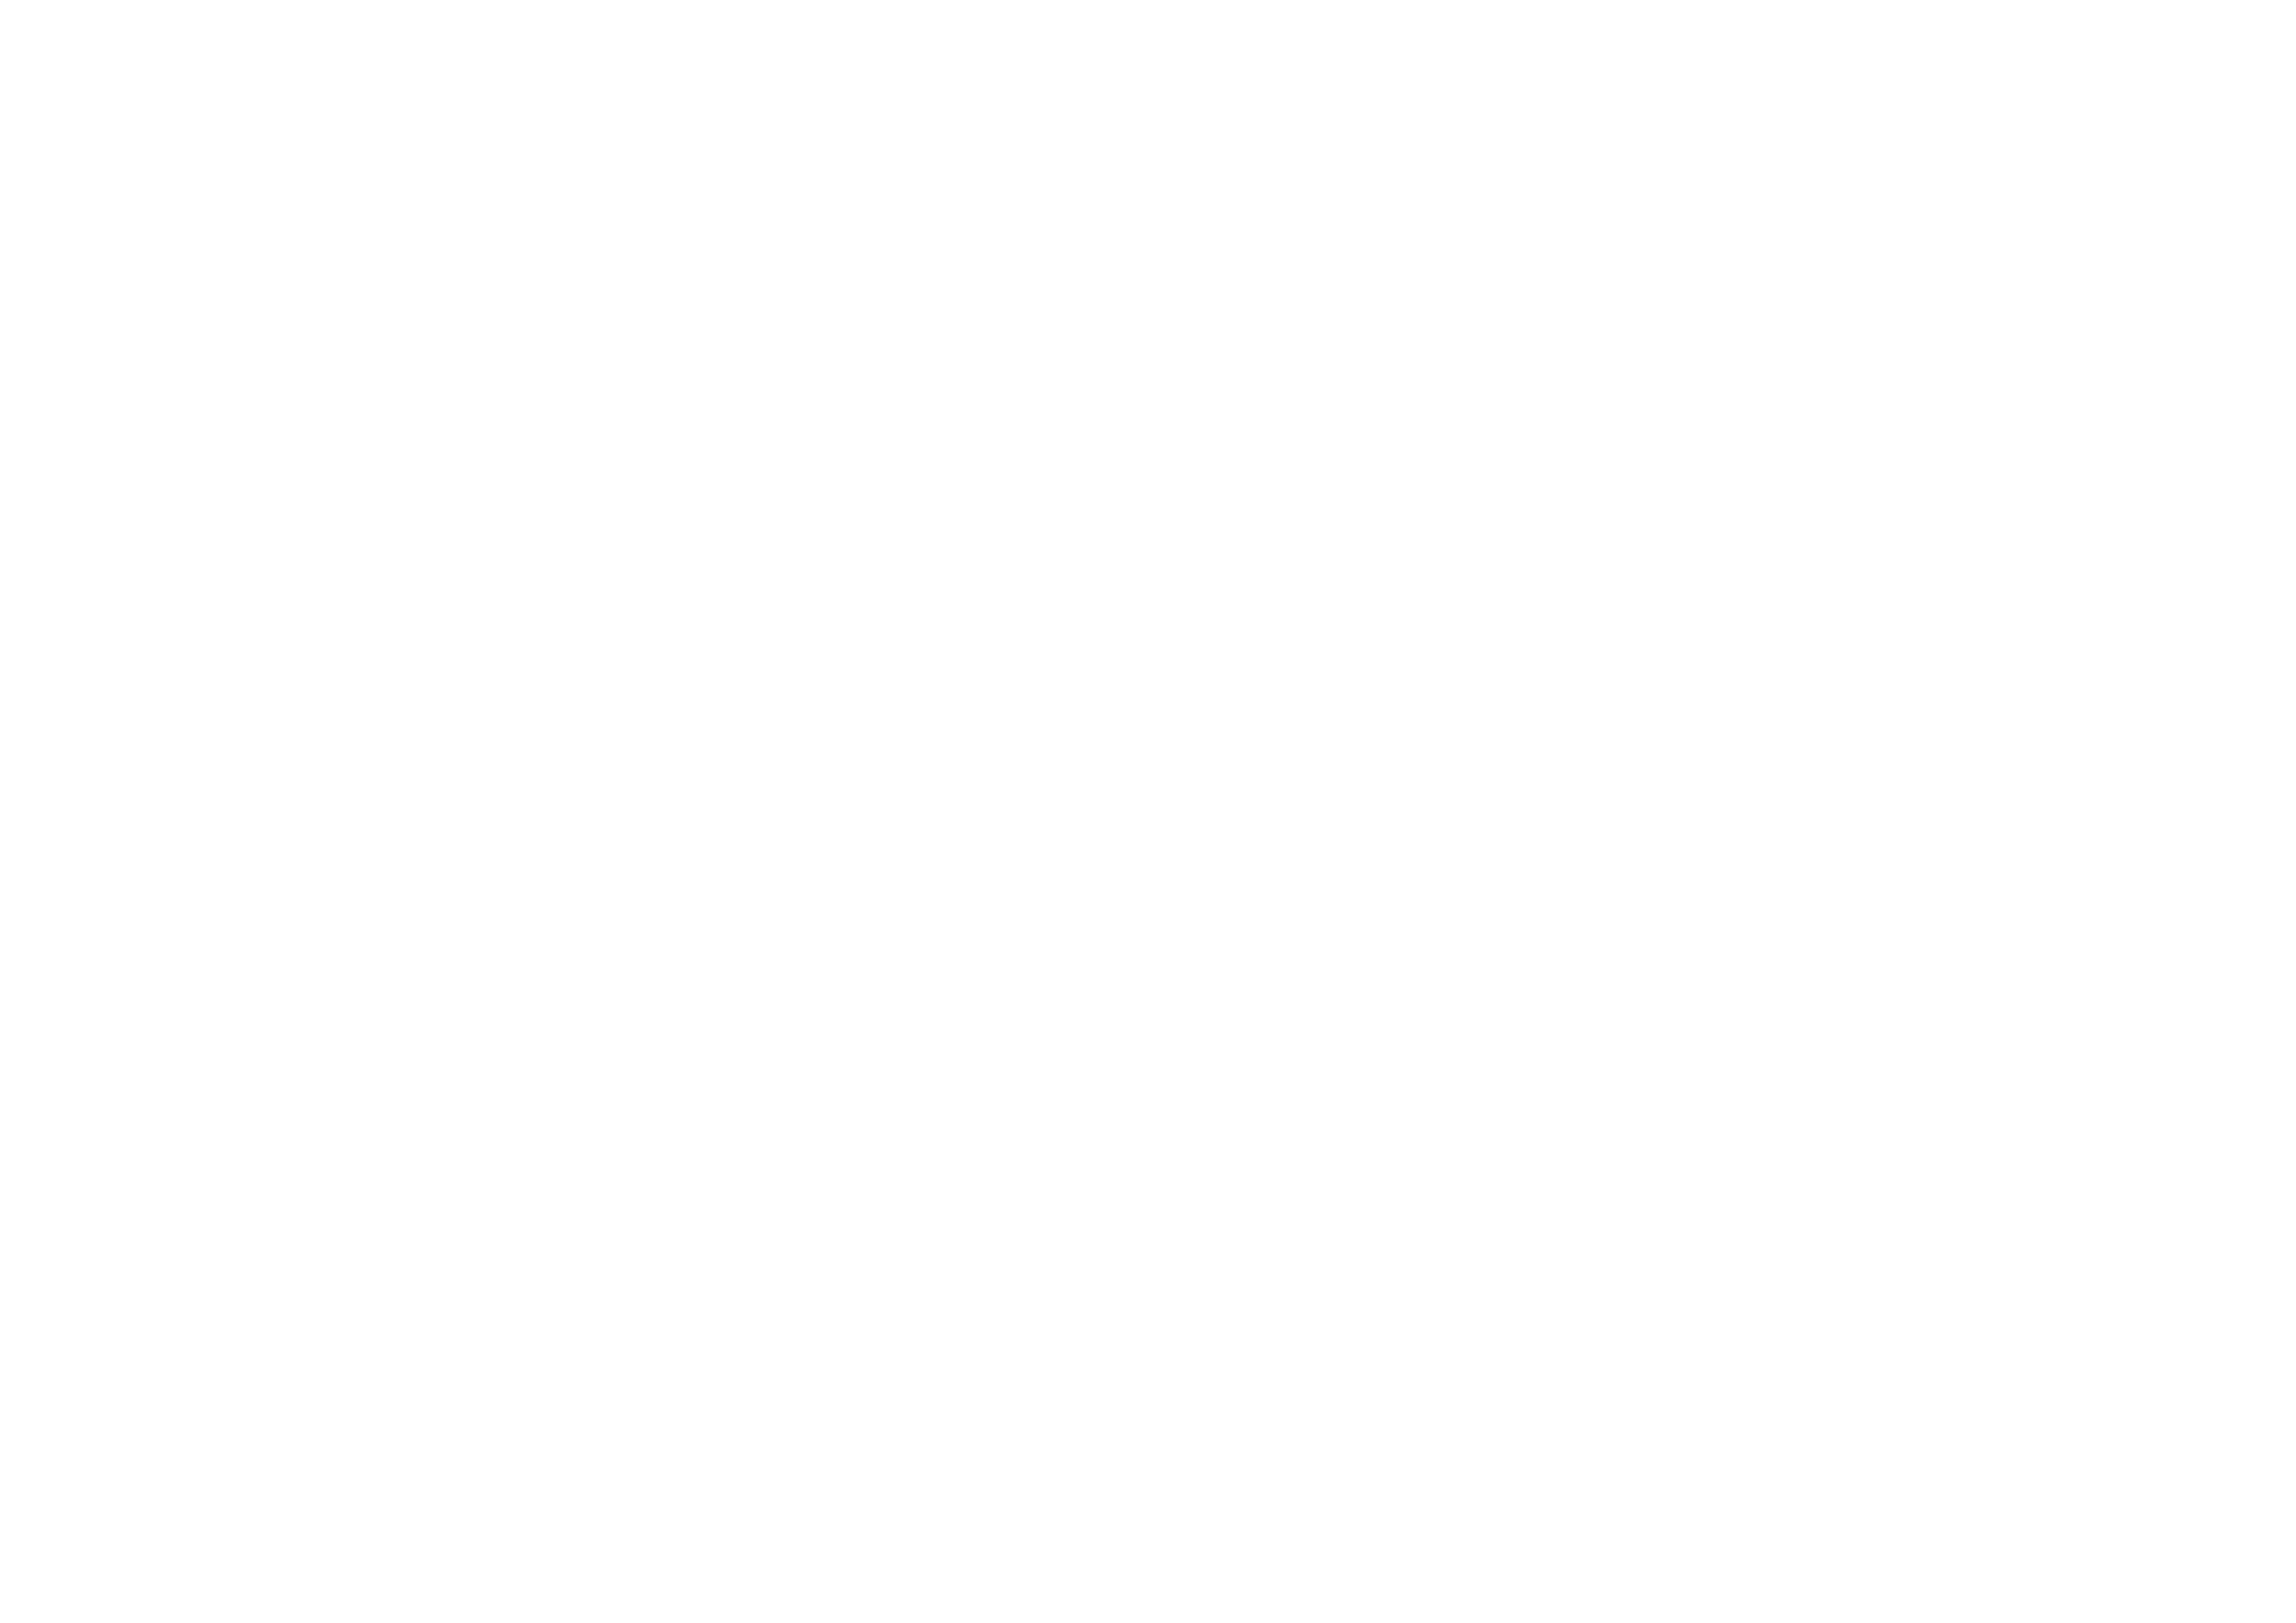 iphone palmistry  Logo 2 vector-02.png